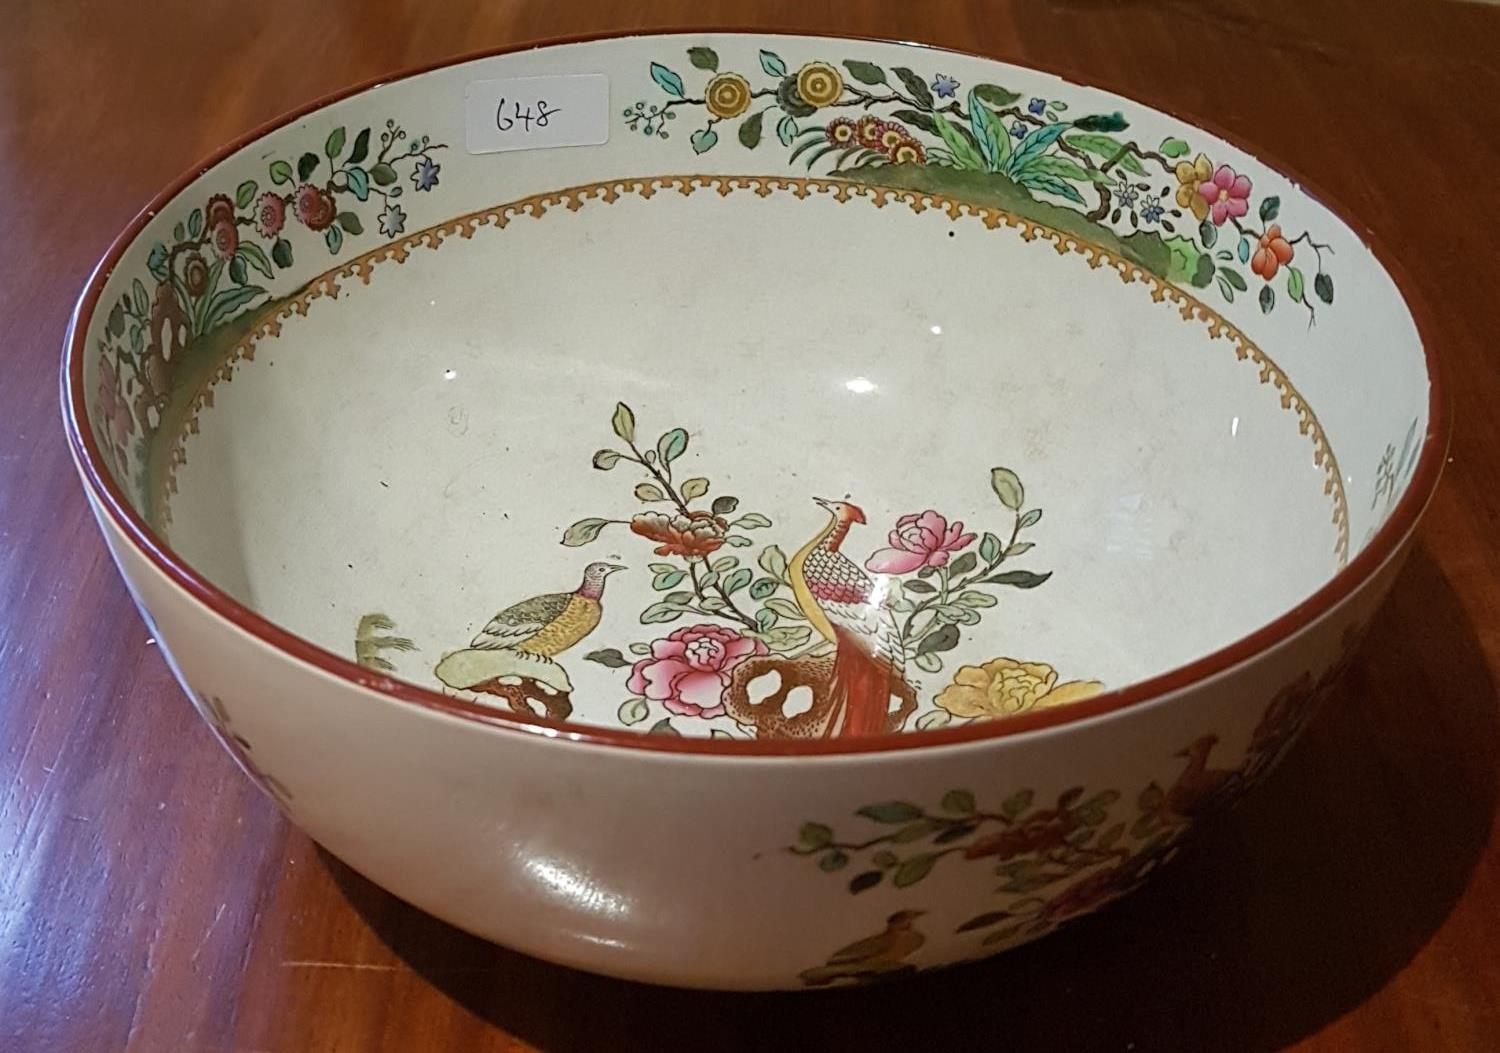 Lot 648 - A 19th Century Copeland Bowl.